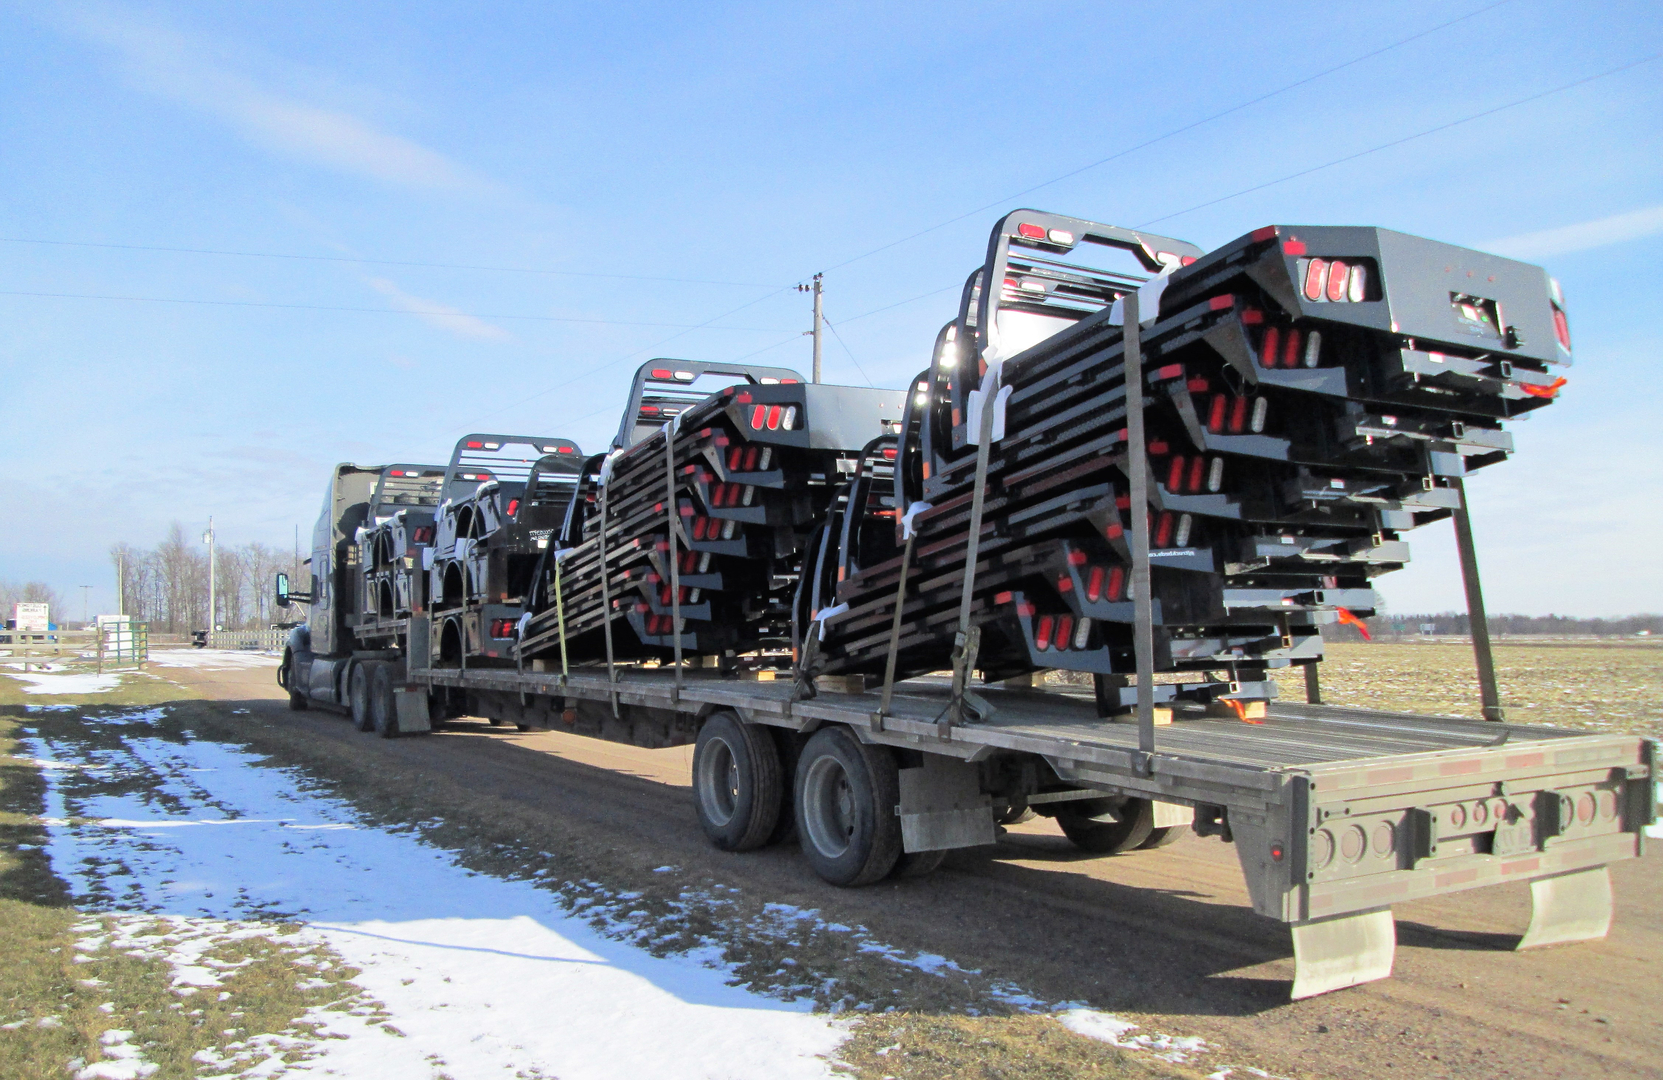 Petes Trailer Sales Home Skid Steer Trailers On Utility Wiring And Lights Repair Express Finance